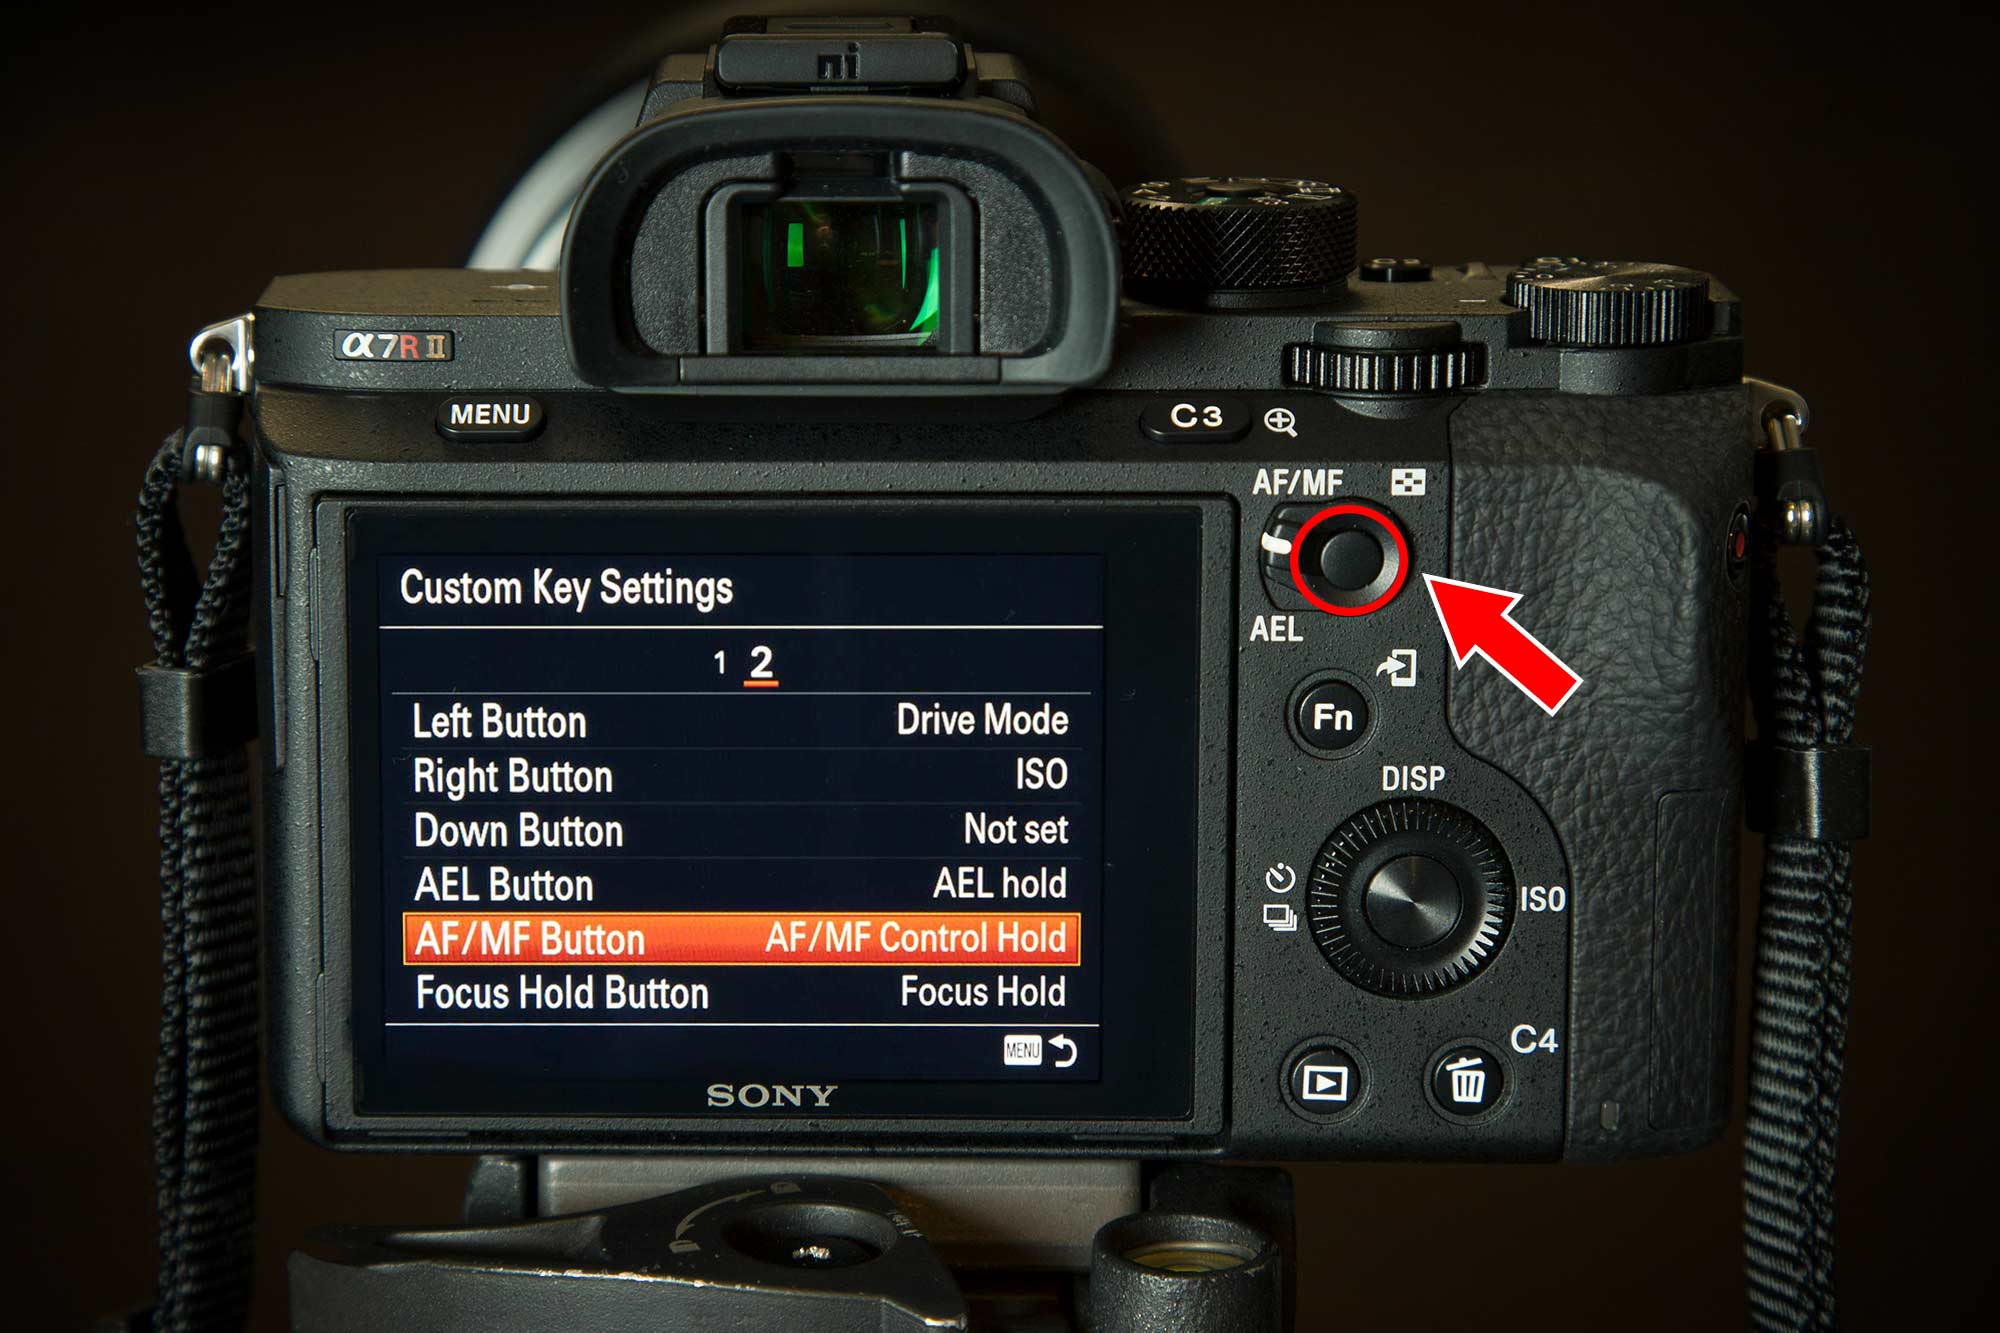 AF.MF AEL Button to Quickly Auto Focus While in Manual Focus